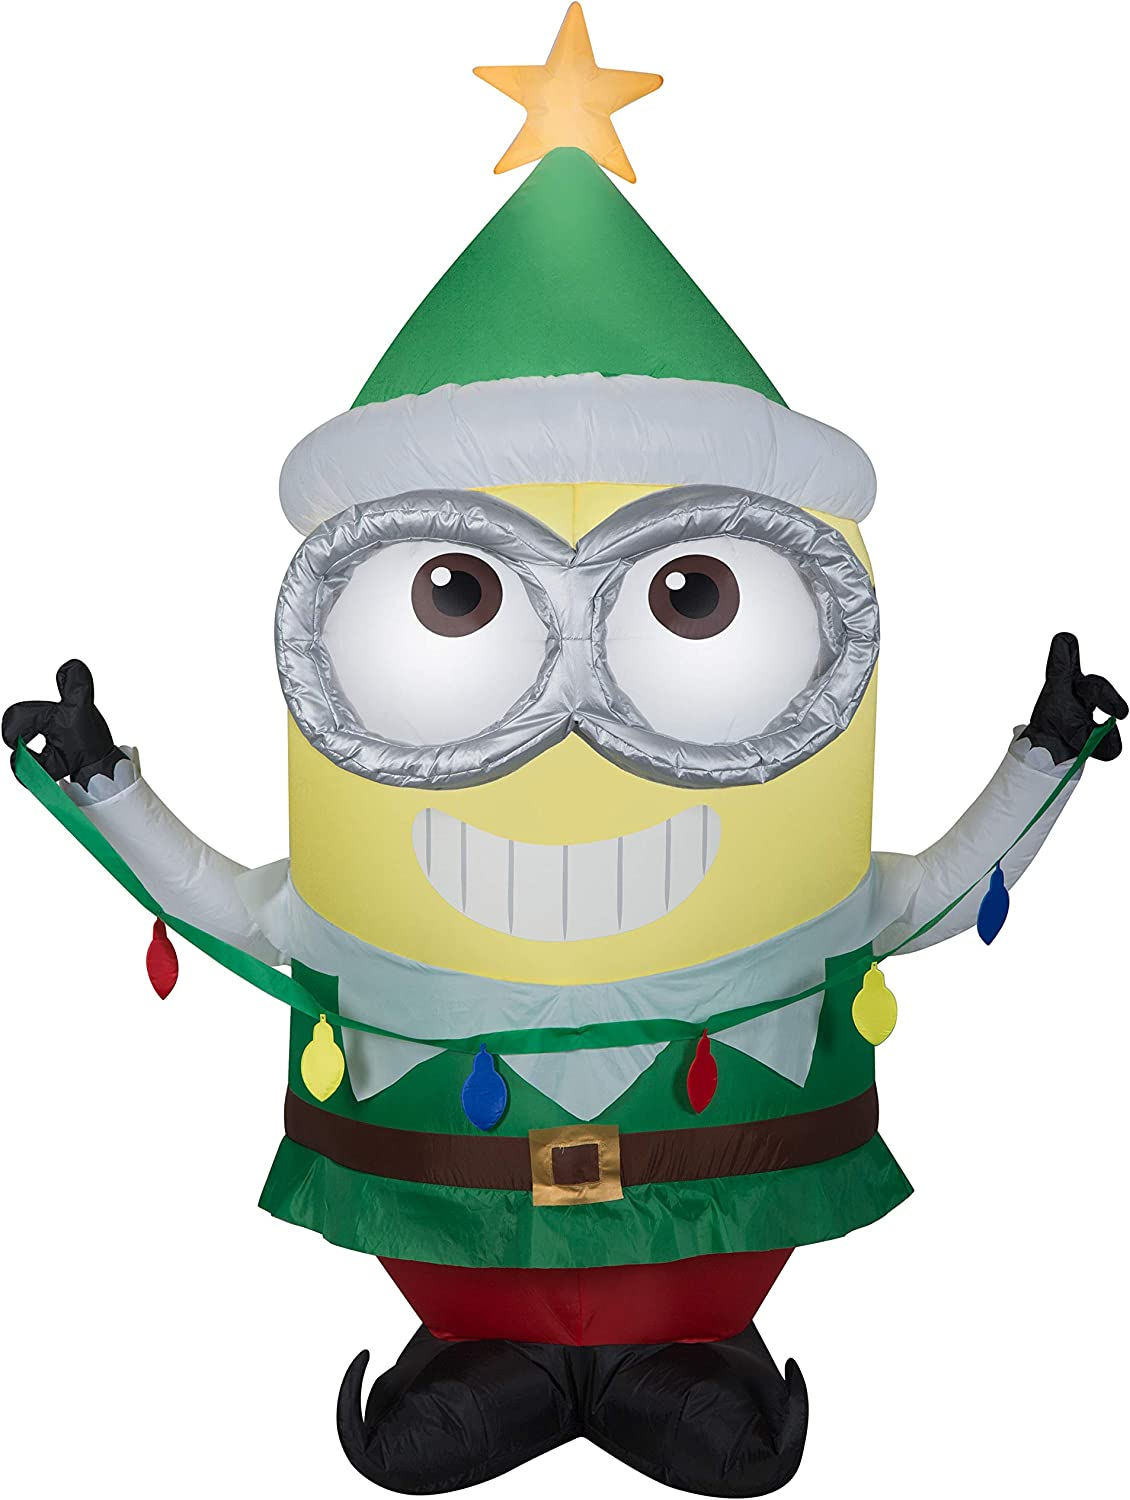 Gemmy 5Ft. Tall Christmas Inflatable Airblown Minion Dave in Green Elf Suit with Star On His Cap Indoor/Outdoor Holiday Decoration